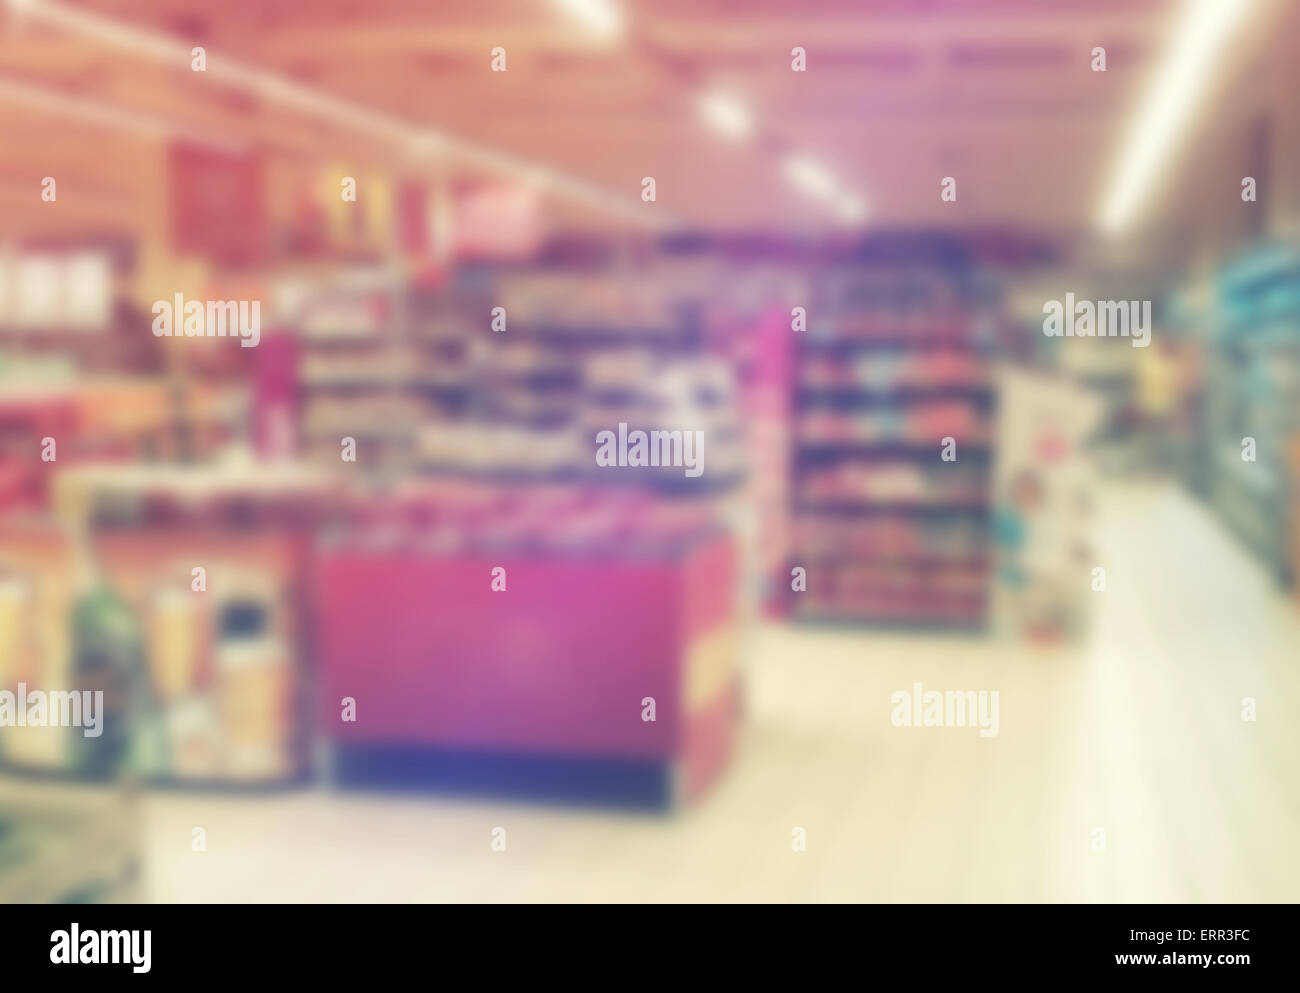 Blurred Abstract Supermarket Aisles Out of Focus for Consumerism, Shopping and Retail Concept - Stock Image